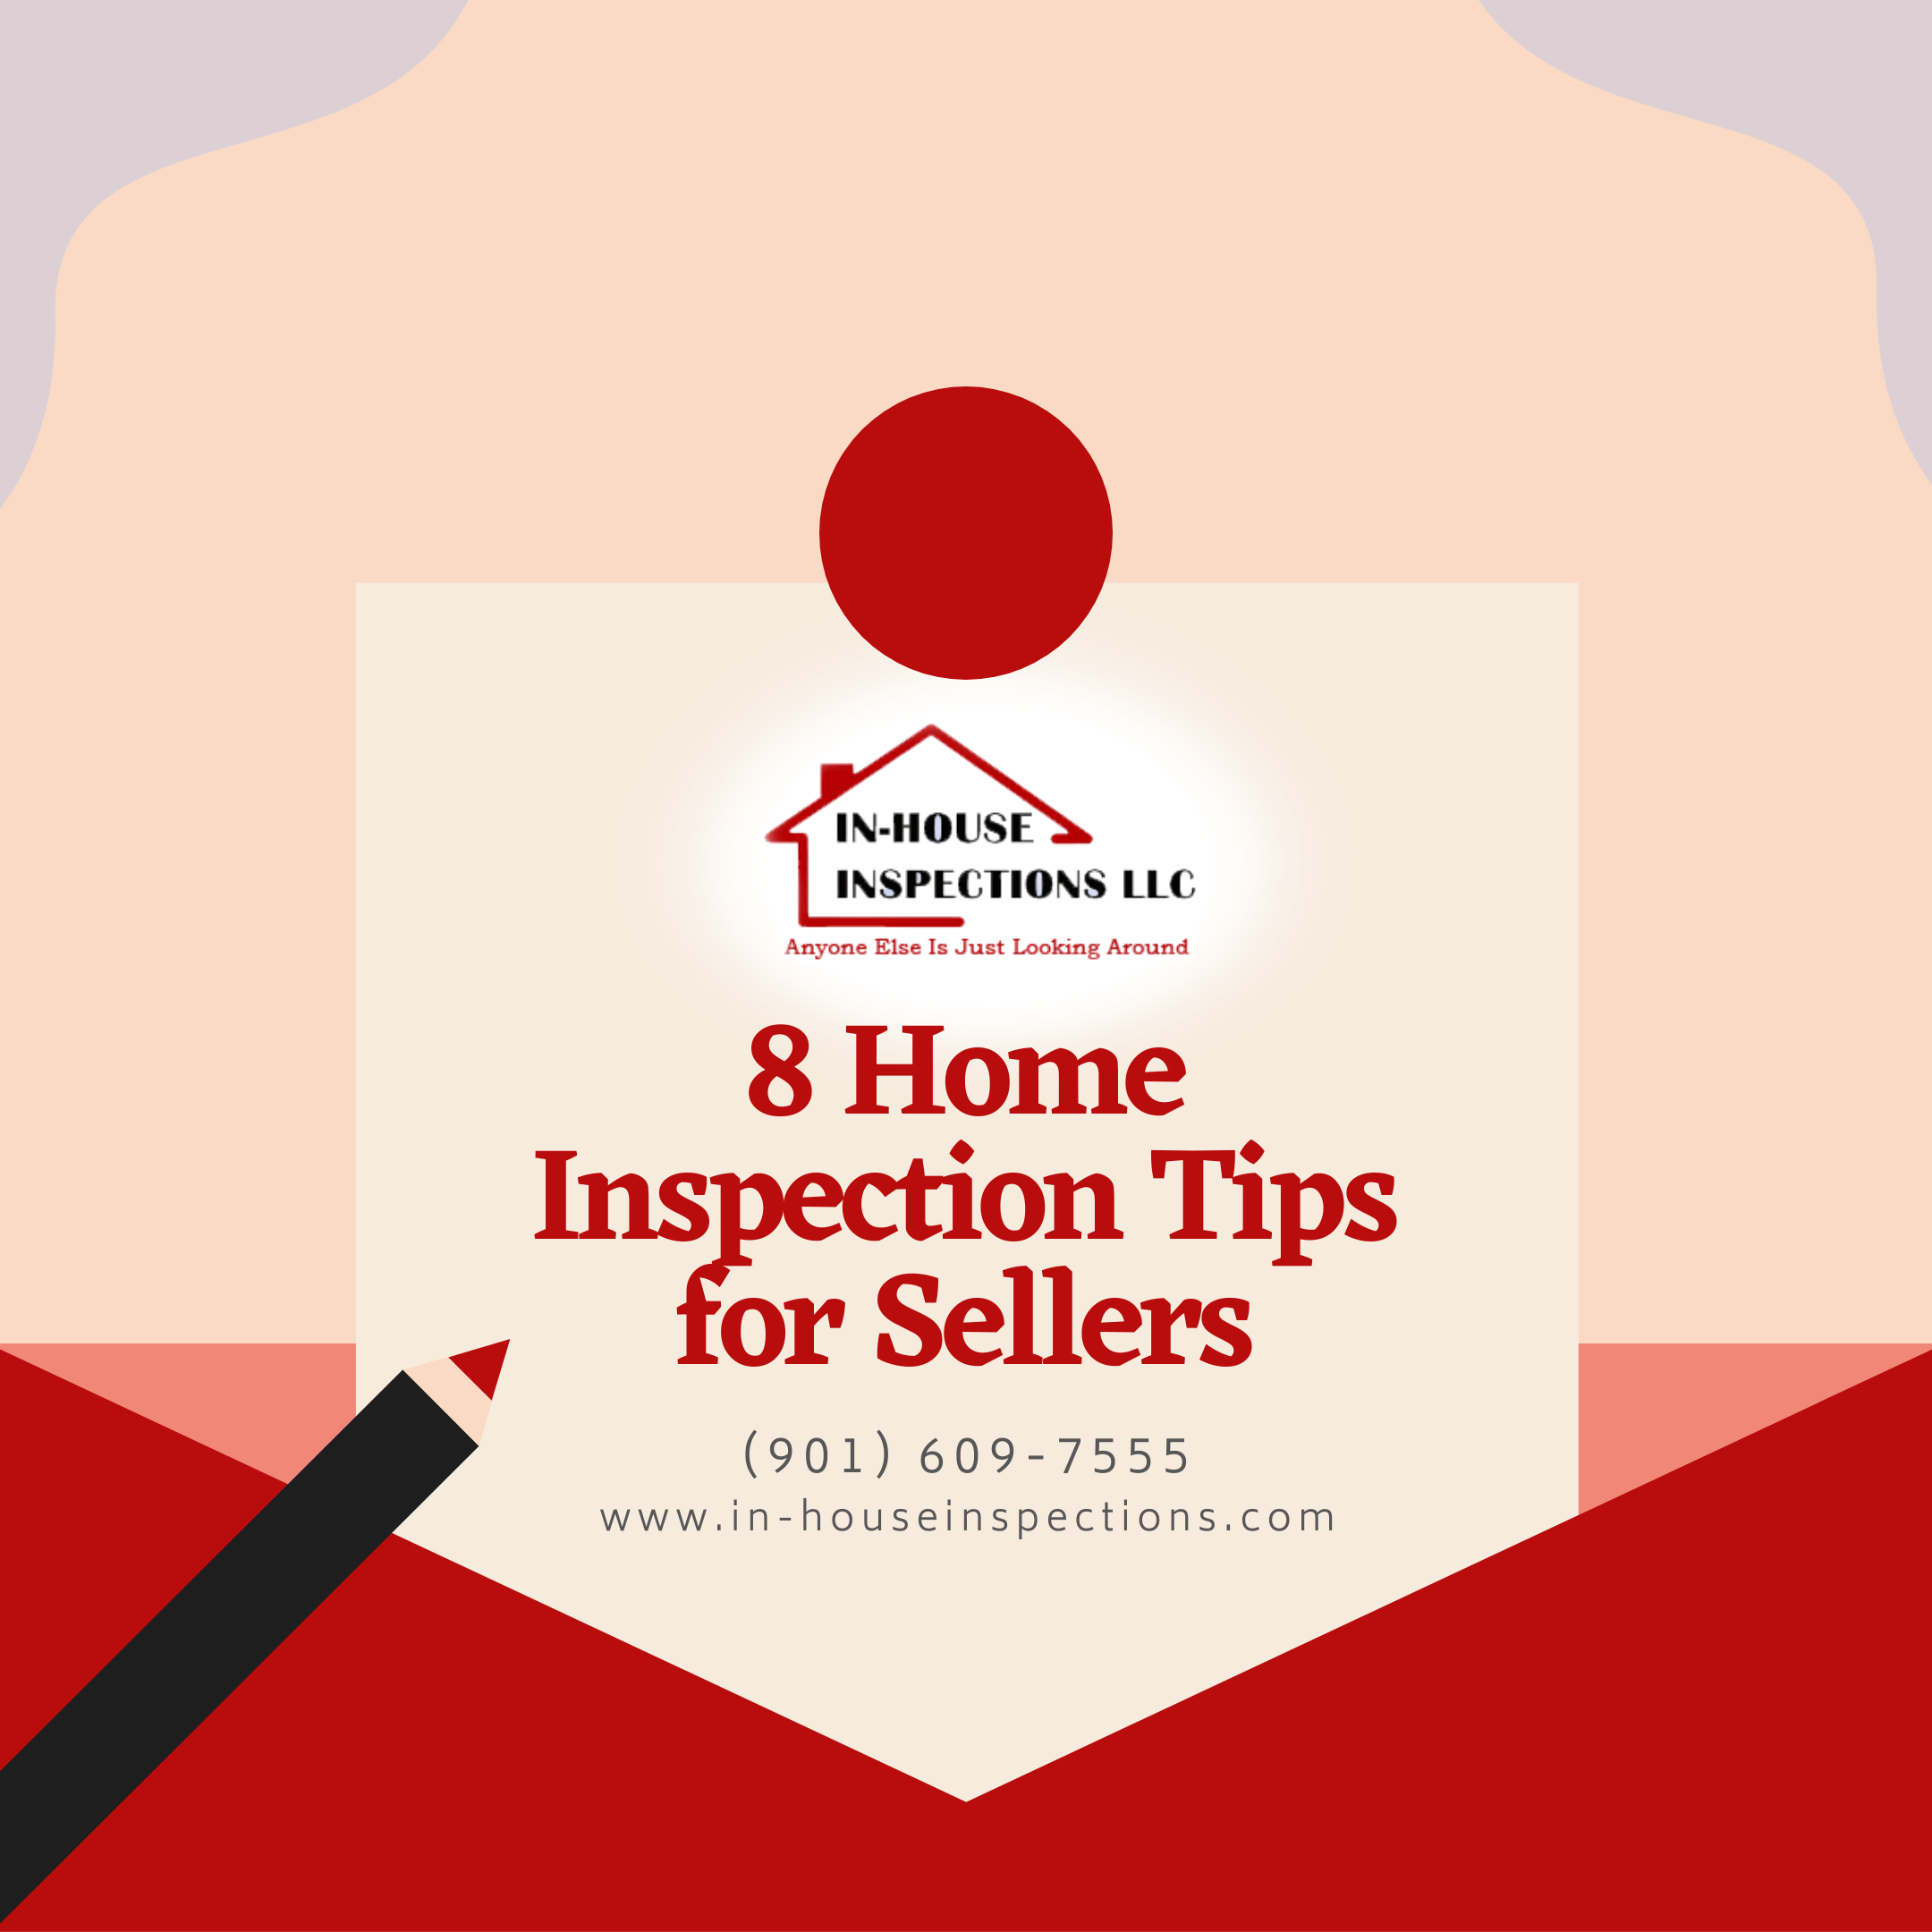 In-House Inspections 8 Home Inspection Tips for Sellers